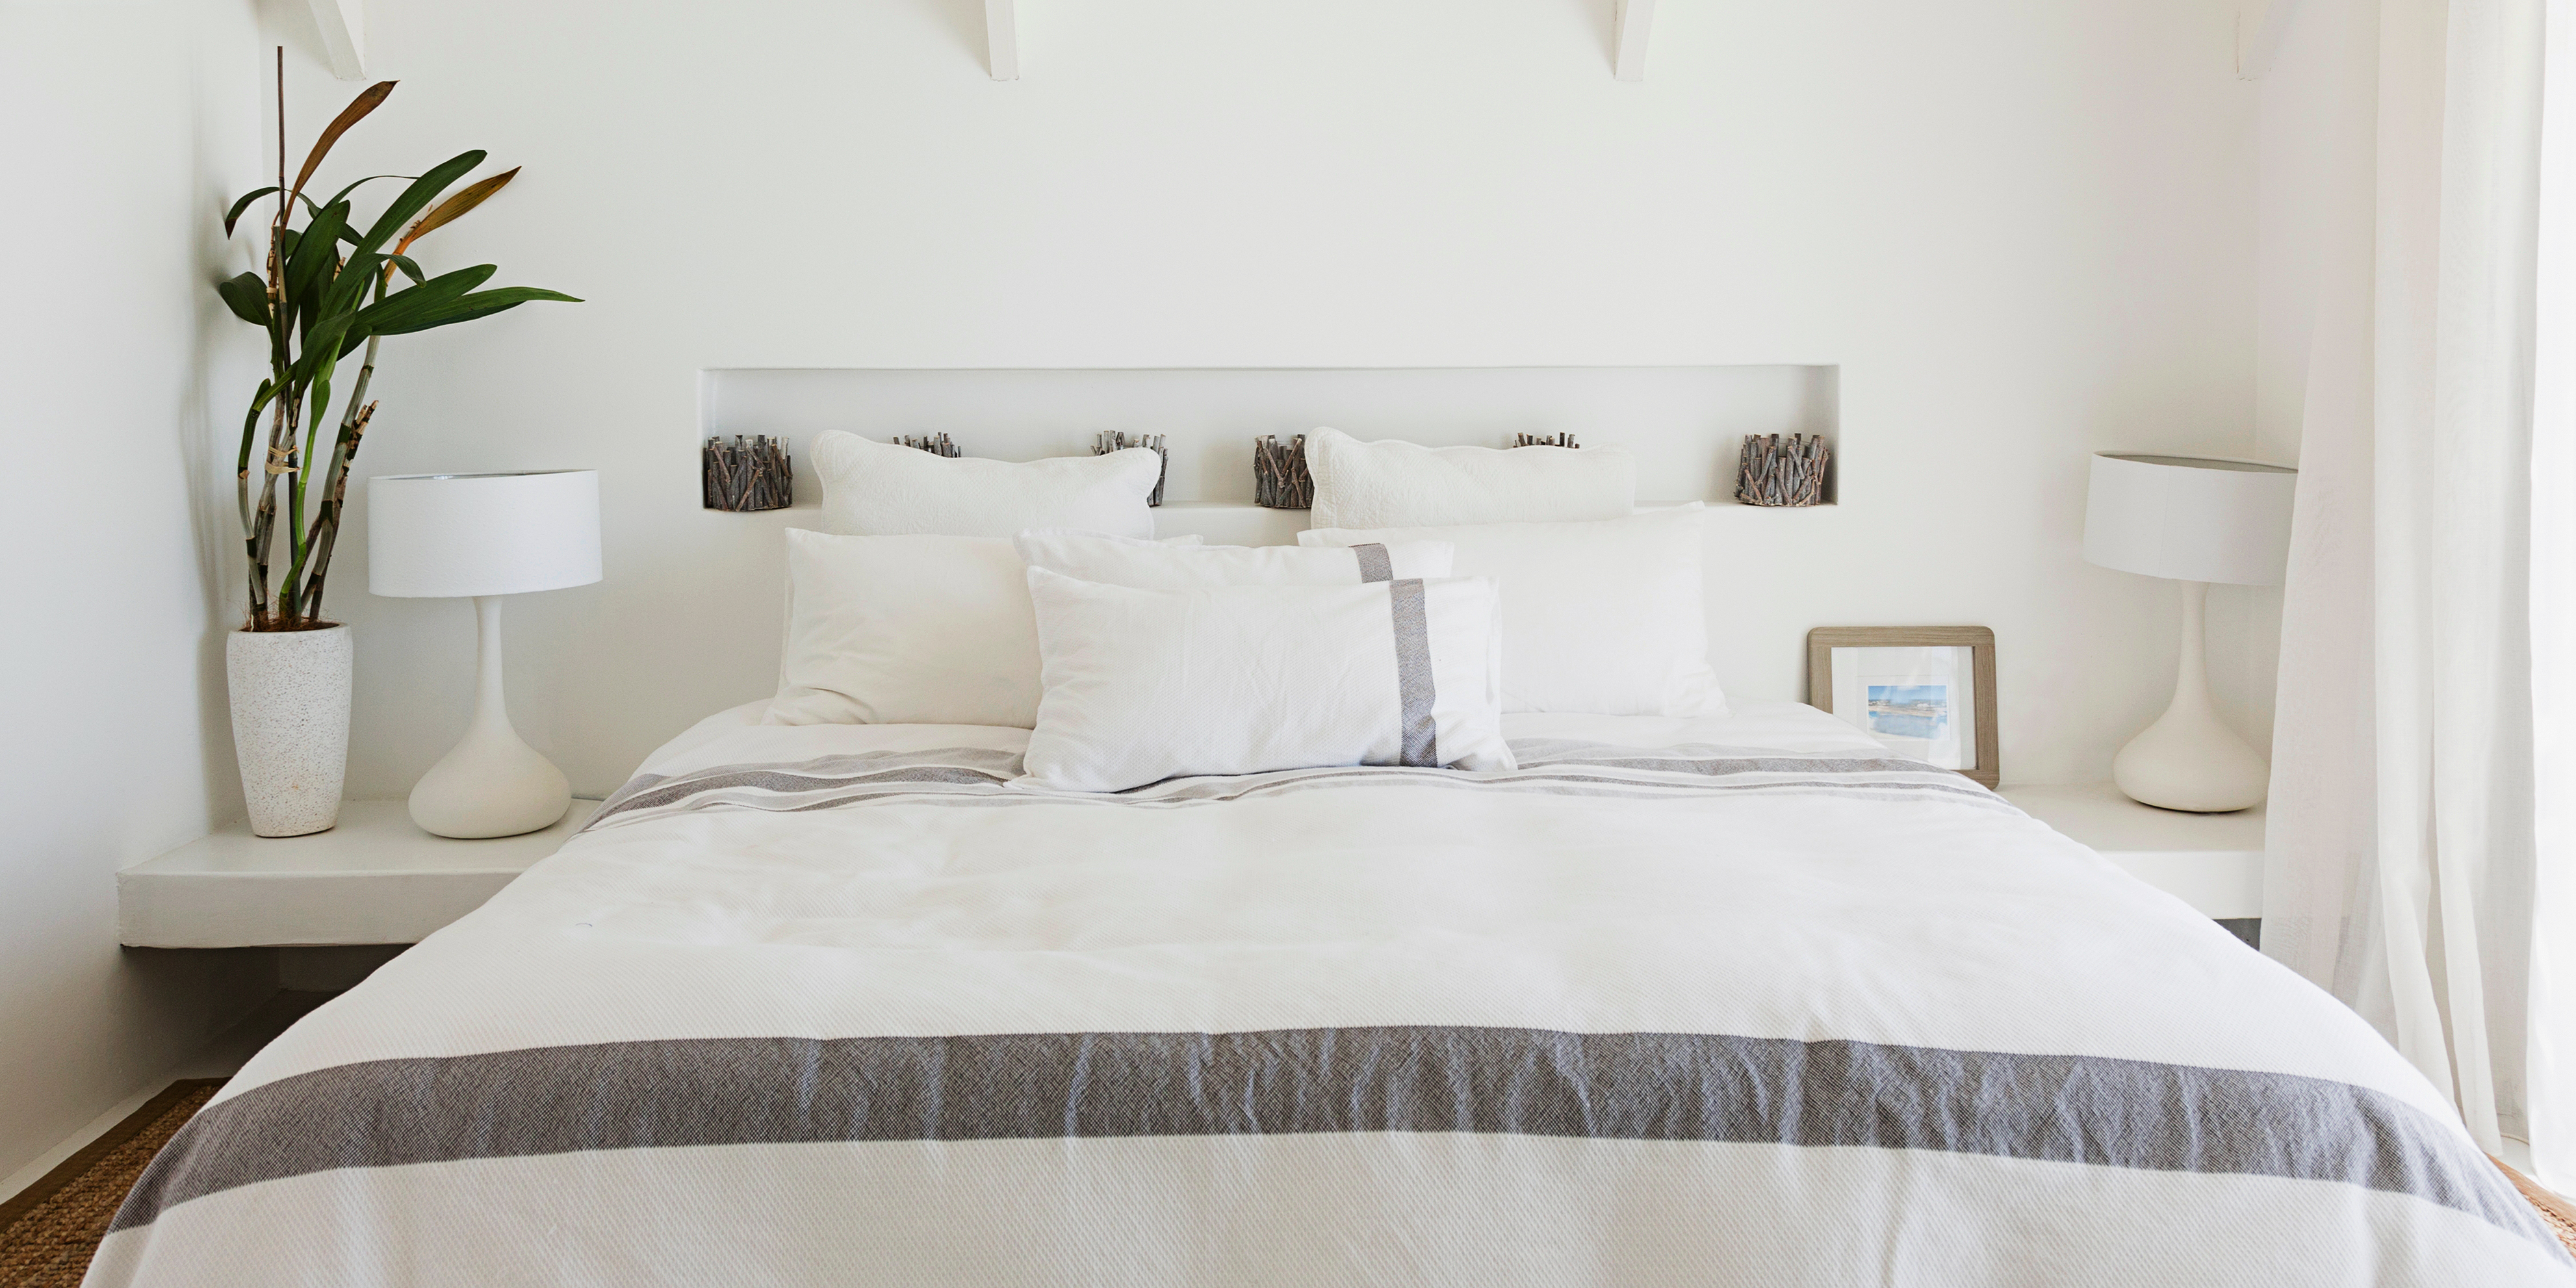 Best Sheets 2017 - Top Rated Sheet Sets for Your Home